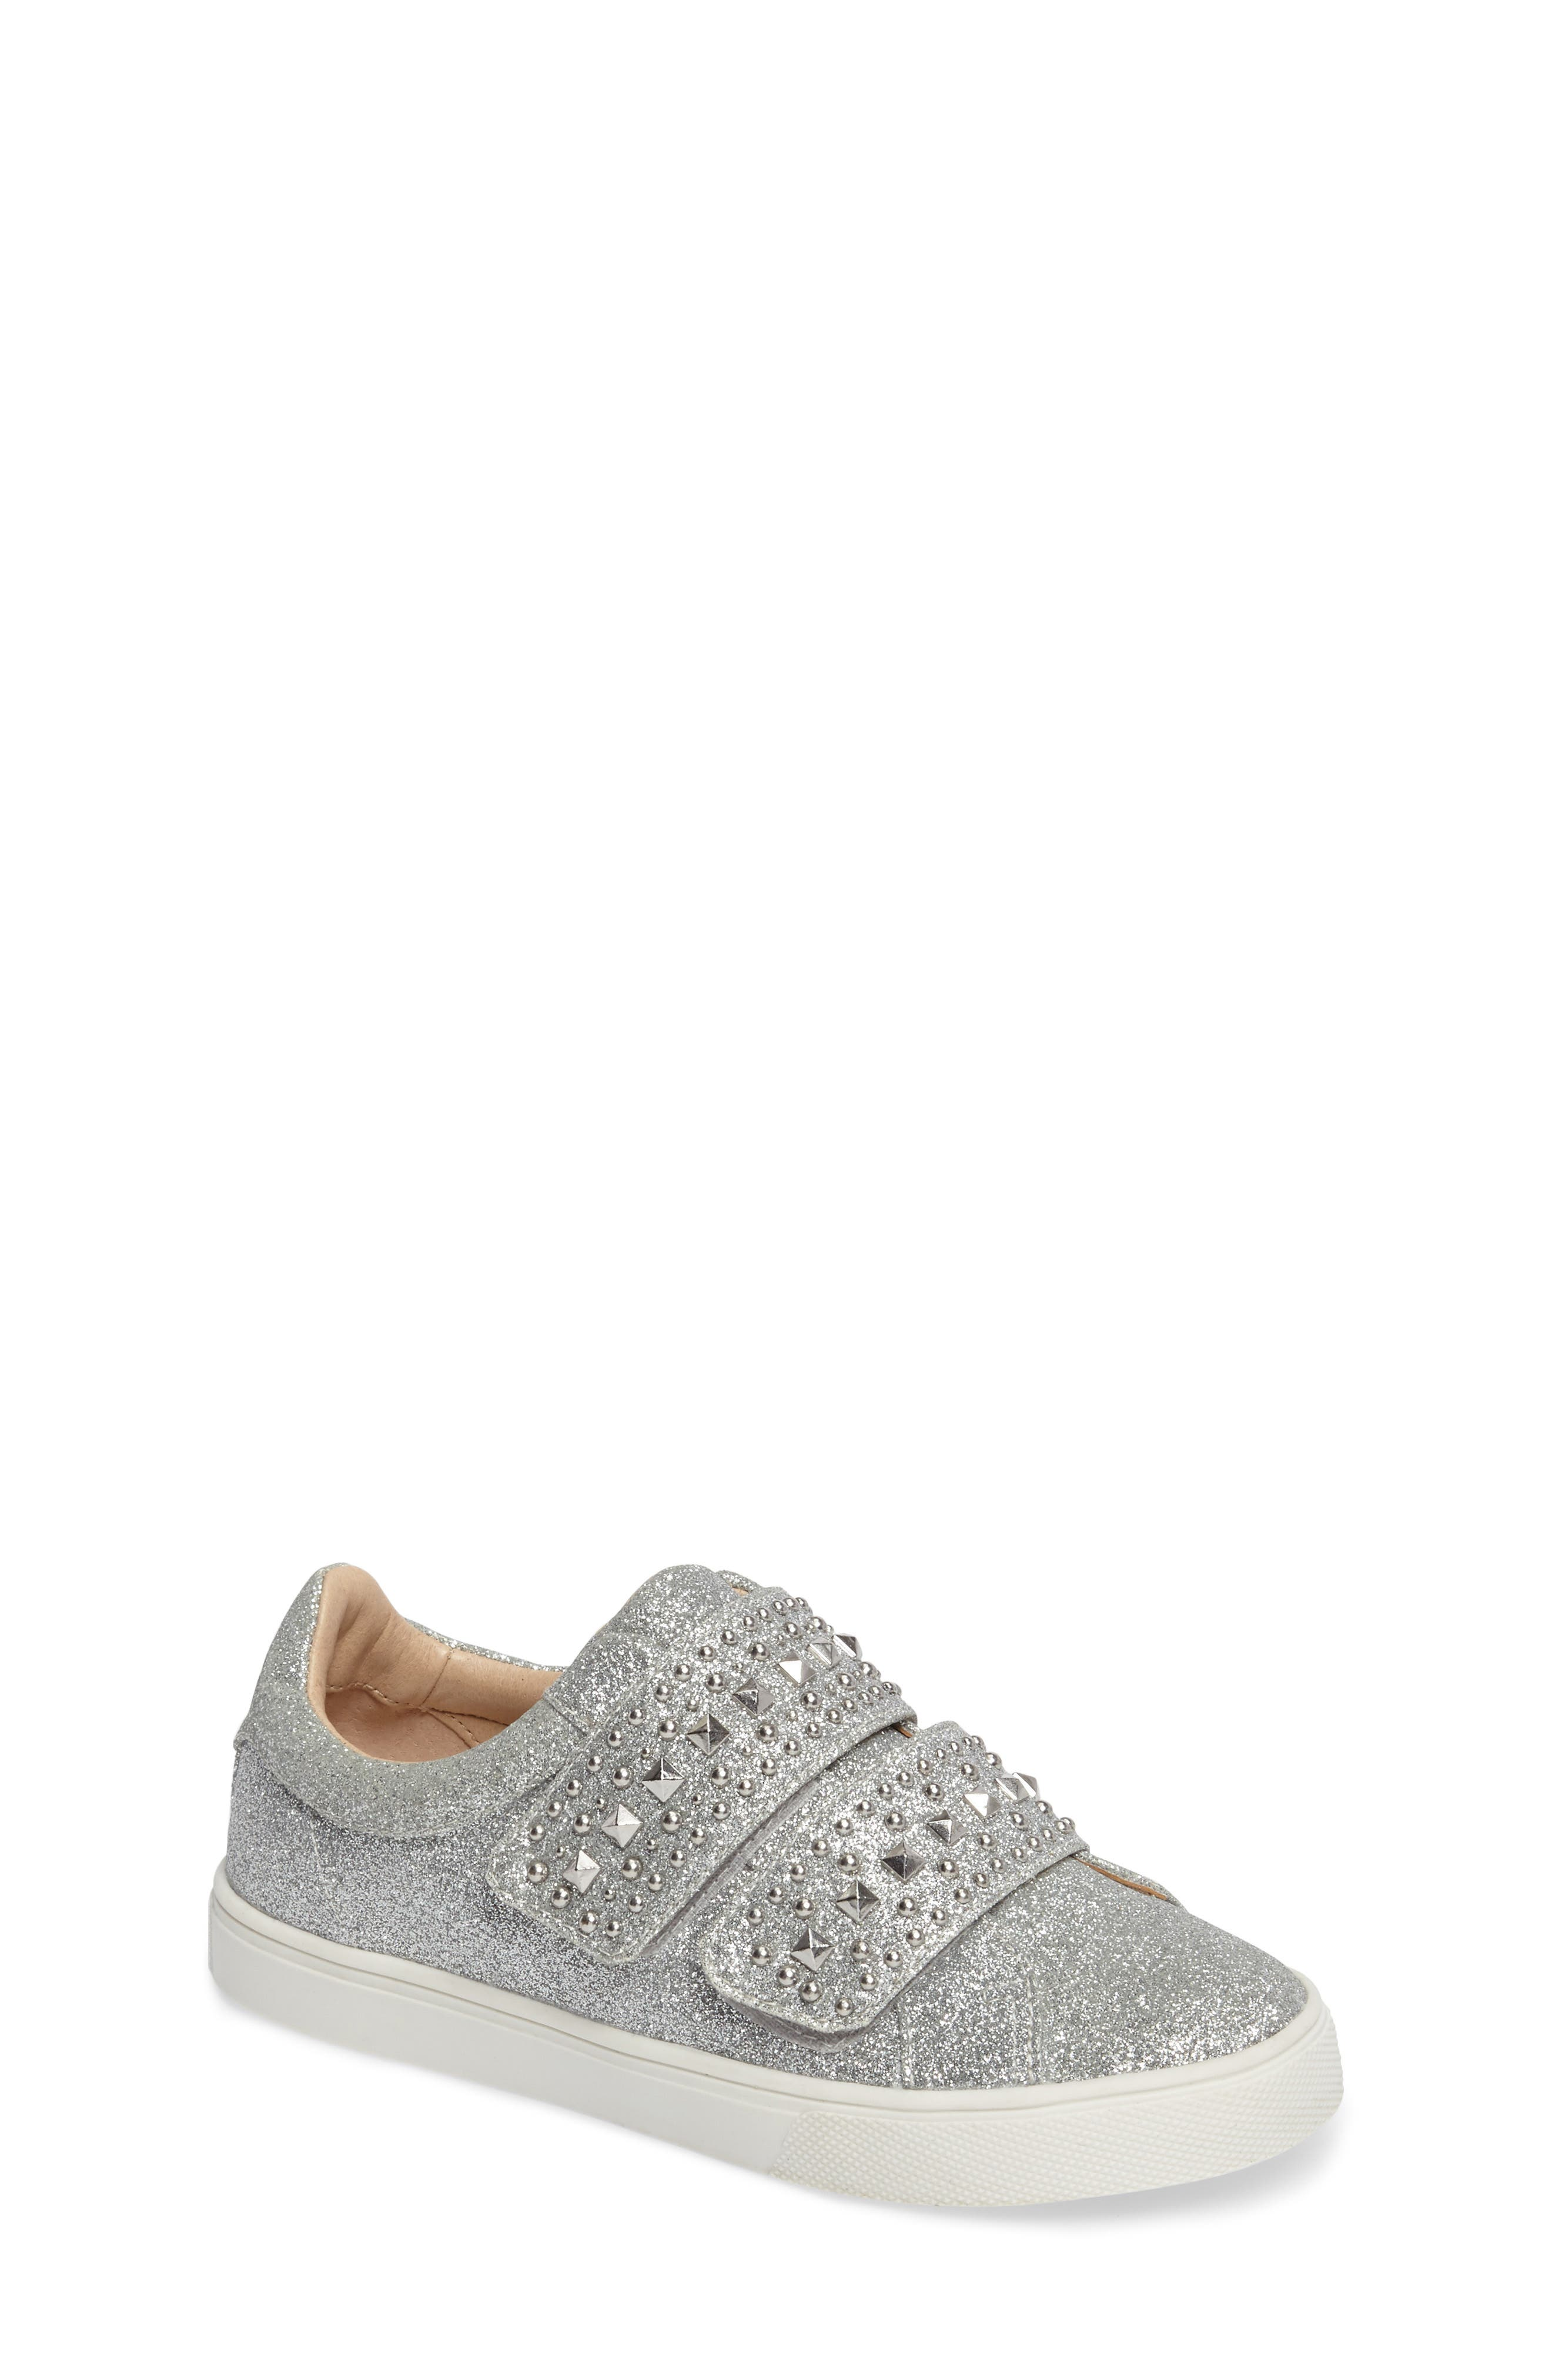 Vince Camuto Baylen Embellished Glitter Sneaker (Toddler, Little Kid & Big Kid)